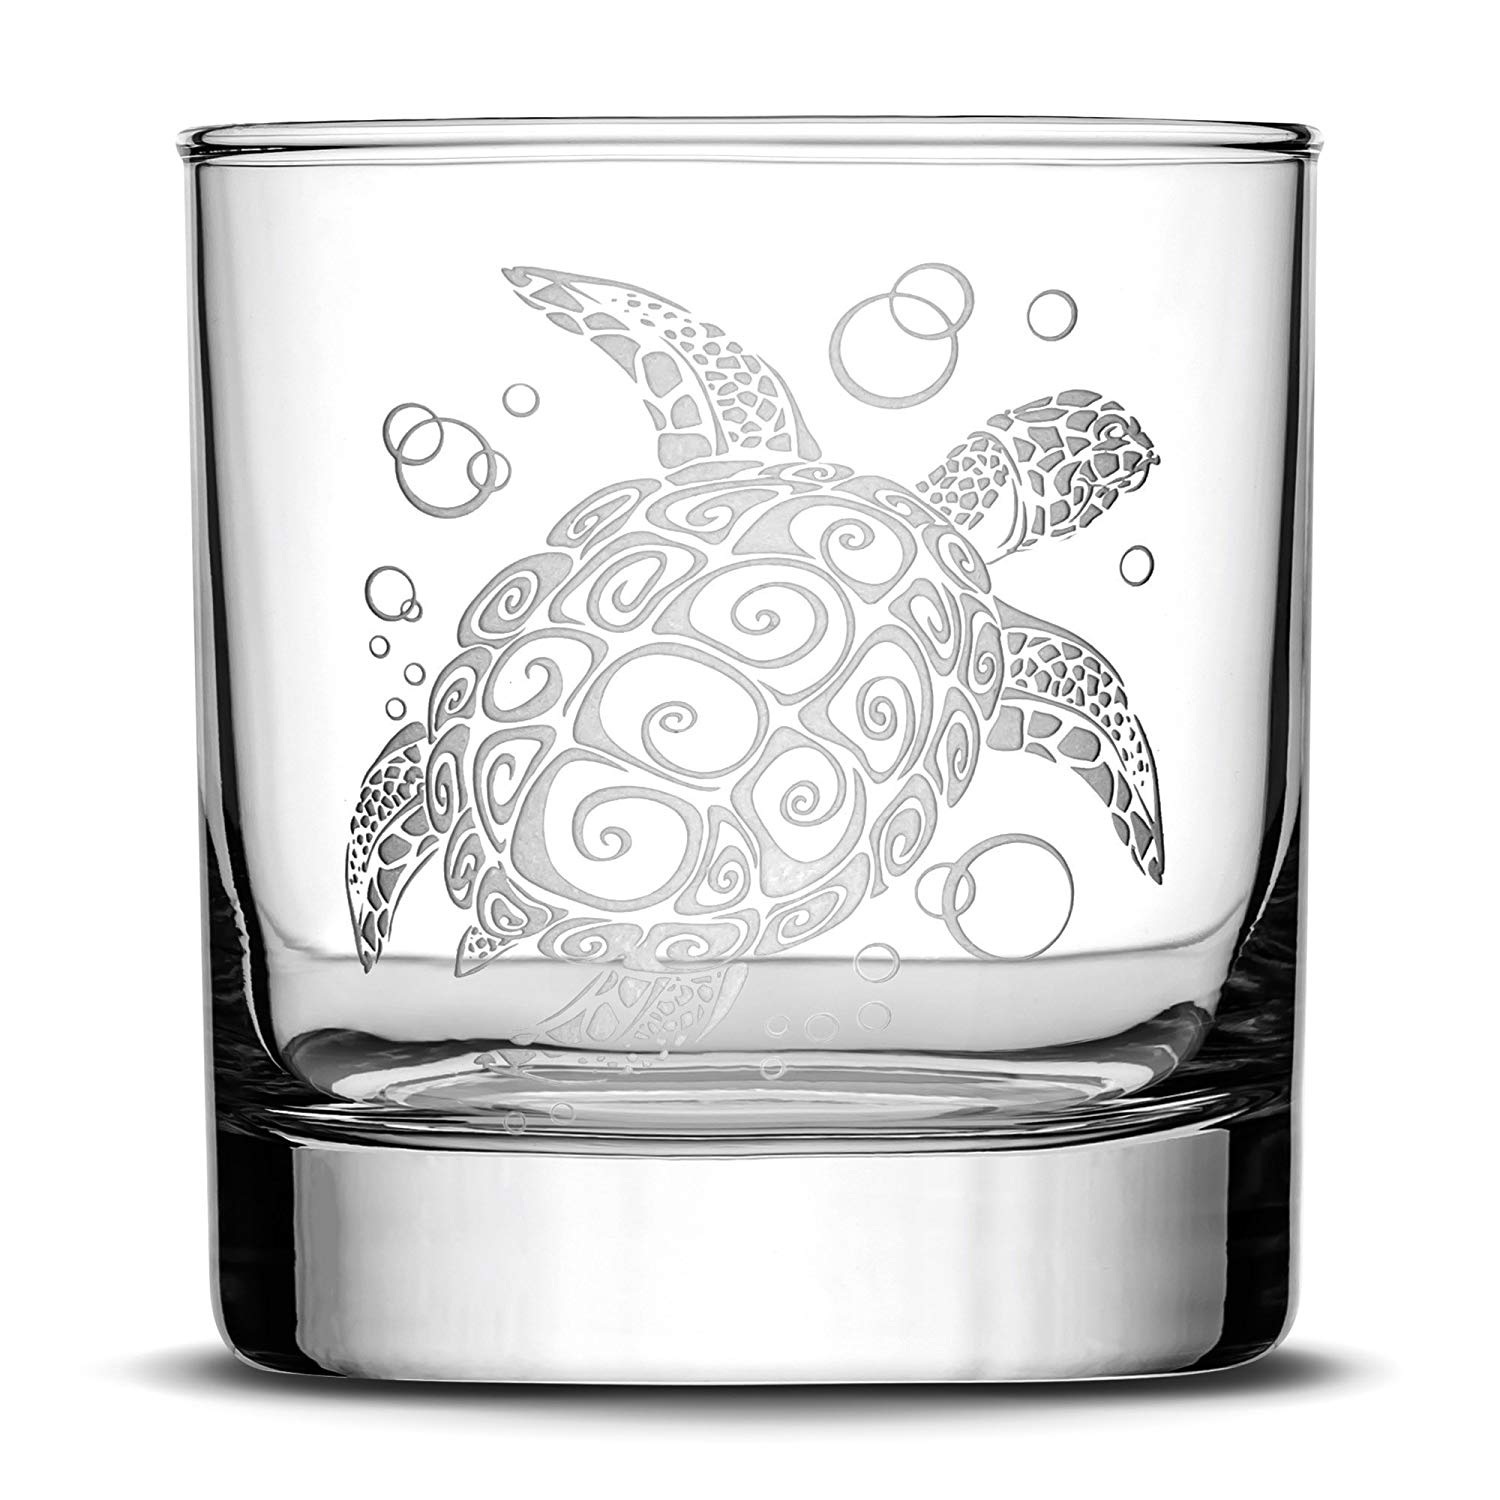 Premium Sea Turtle Whiskey Glass, Hand Etched Tribal Design, 10oz Rocks Glass Made in USA, Highball Gifts, Sand Carved by Integrity Bottles